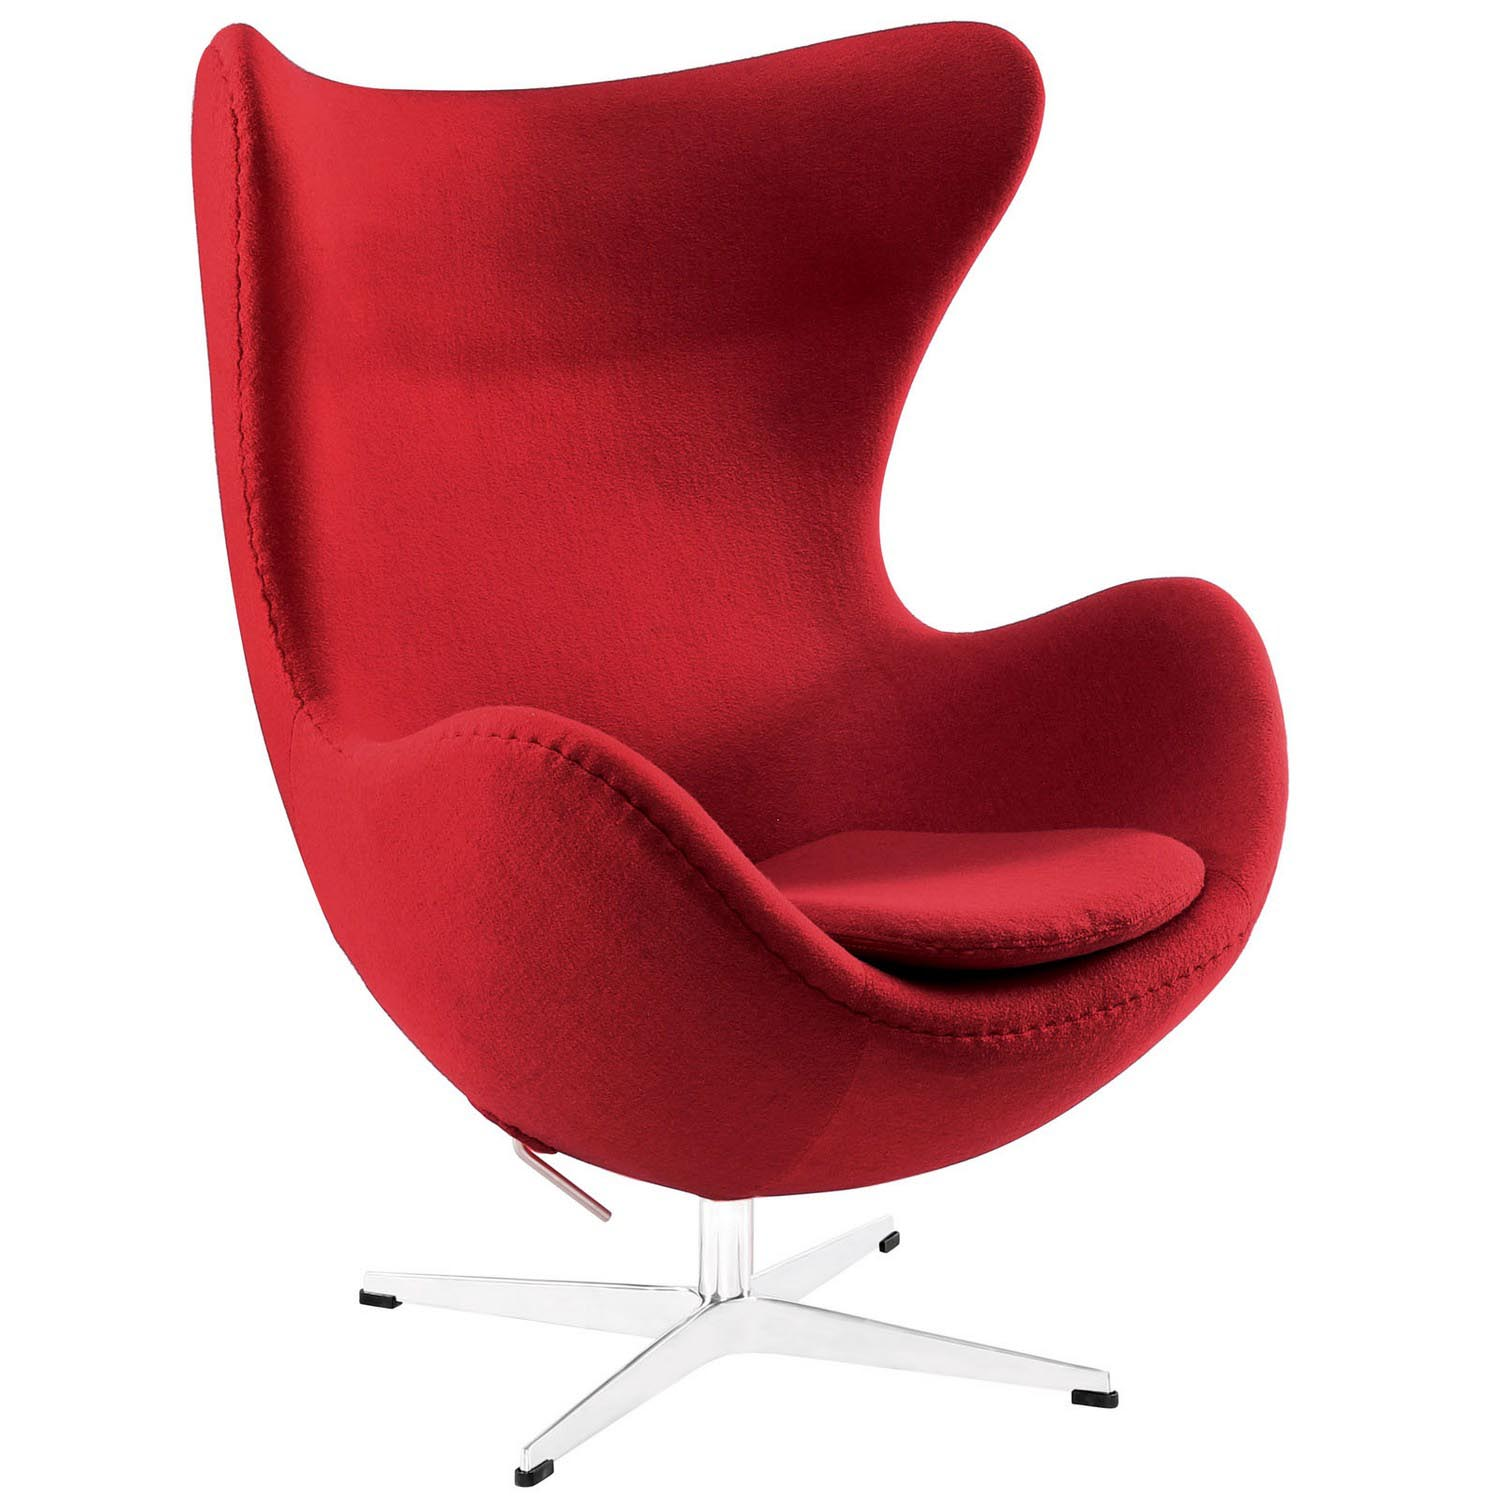 Modway Glove Wool Lounge Chair - Red